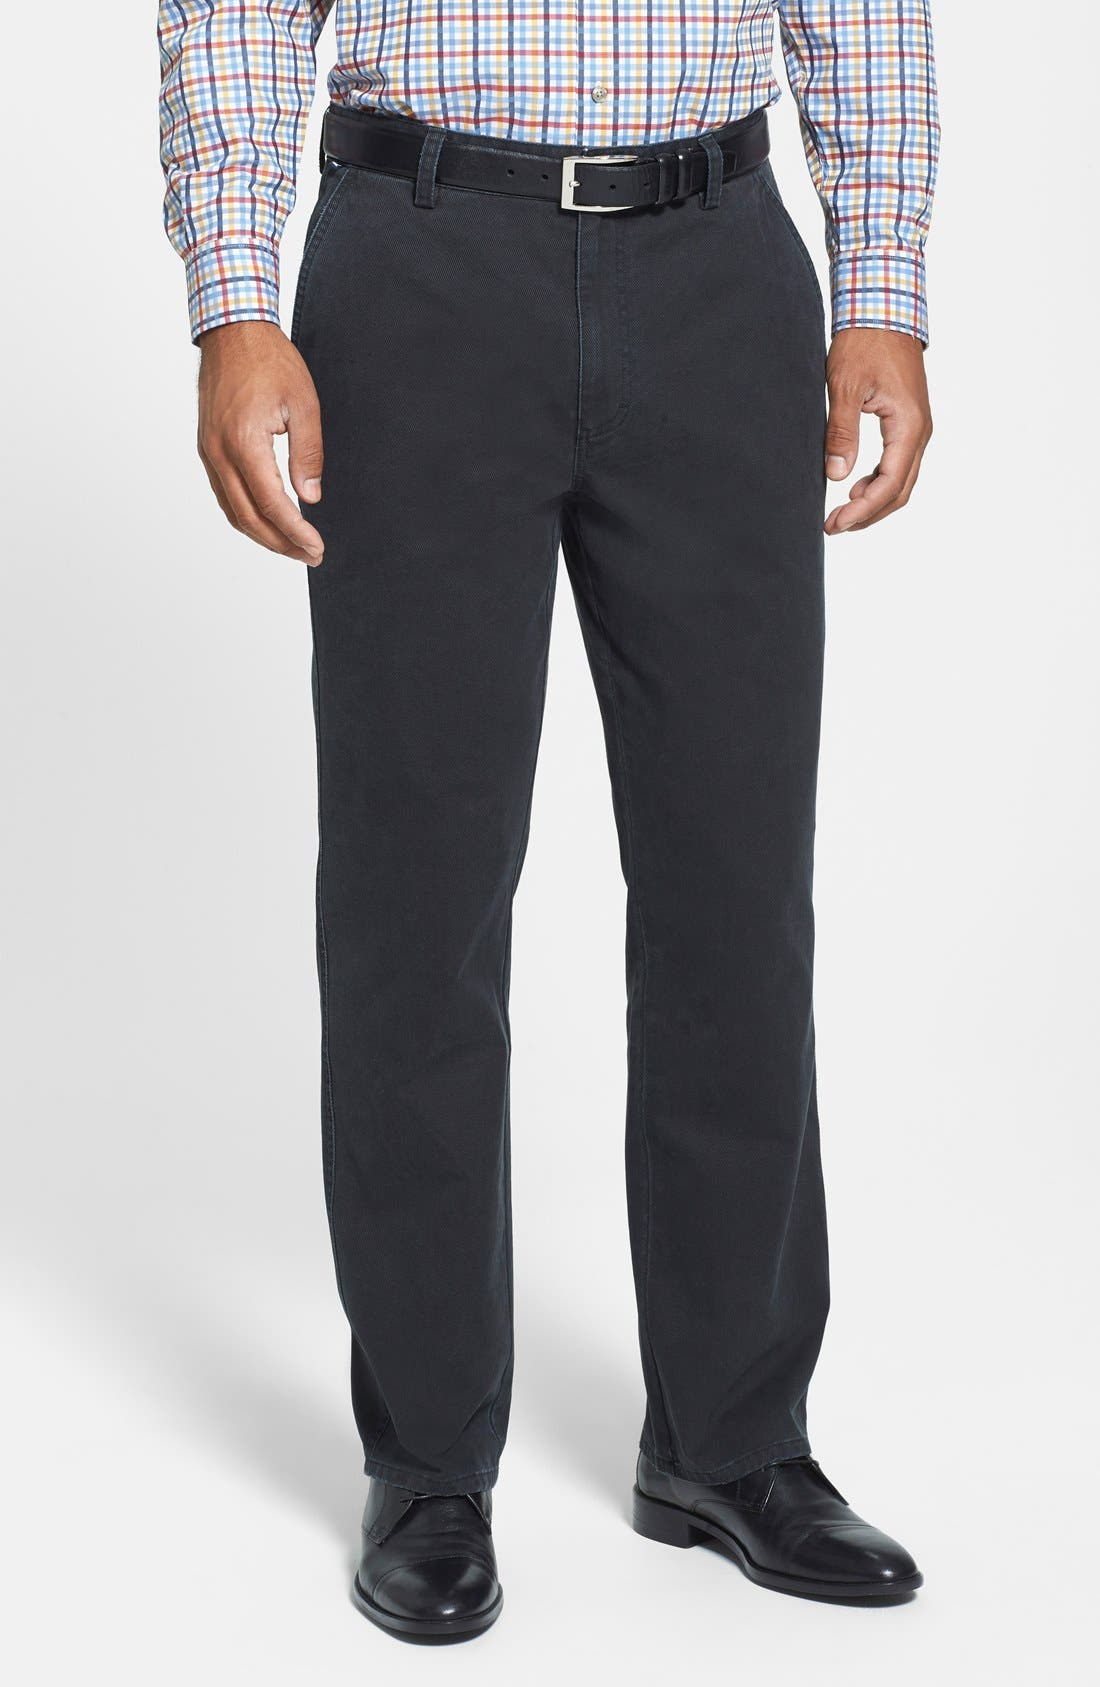 Cutter & Buck 'Curtis' Flat Front Five-Pocket Cotton Twill Pants (Big & Tall)